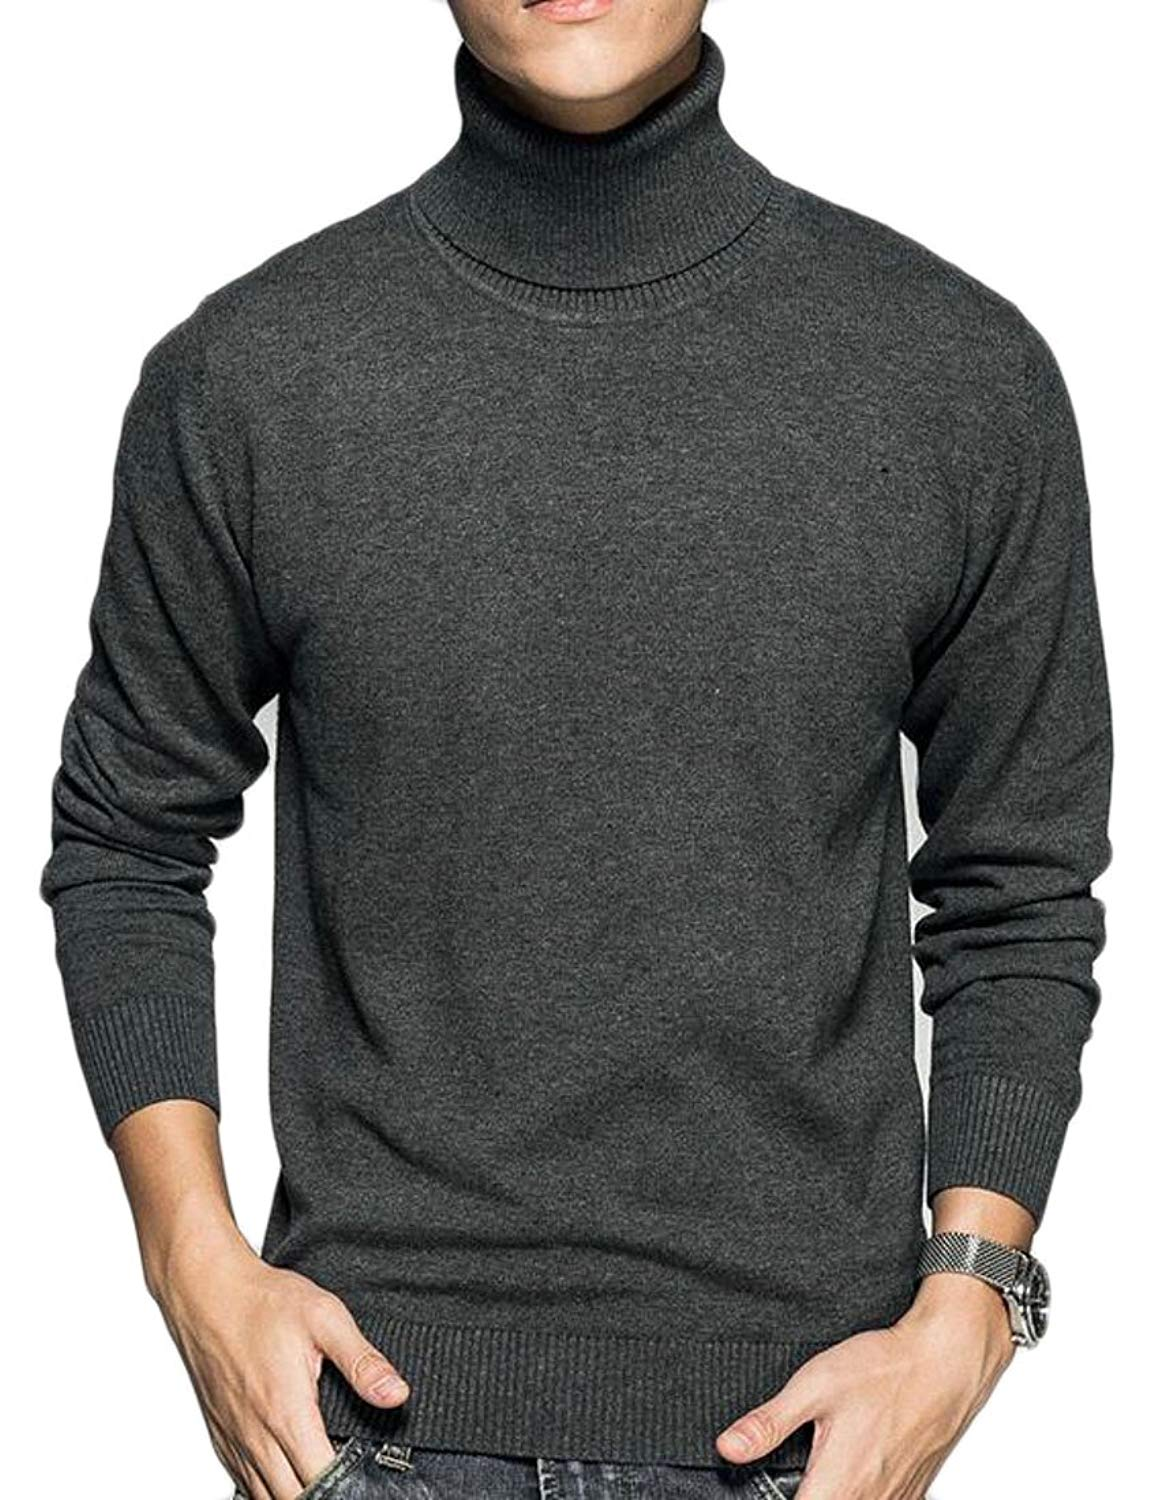 WSPLYSPJY Mens Casual Slim Fit Basic Knitted Turtleneck Pullover Thermal Sweaters